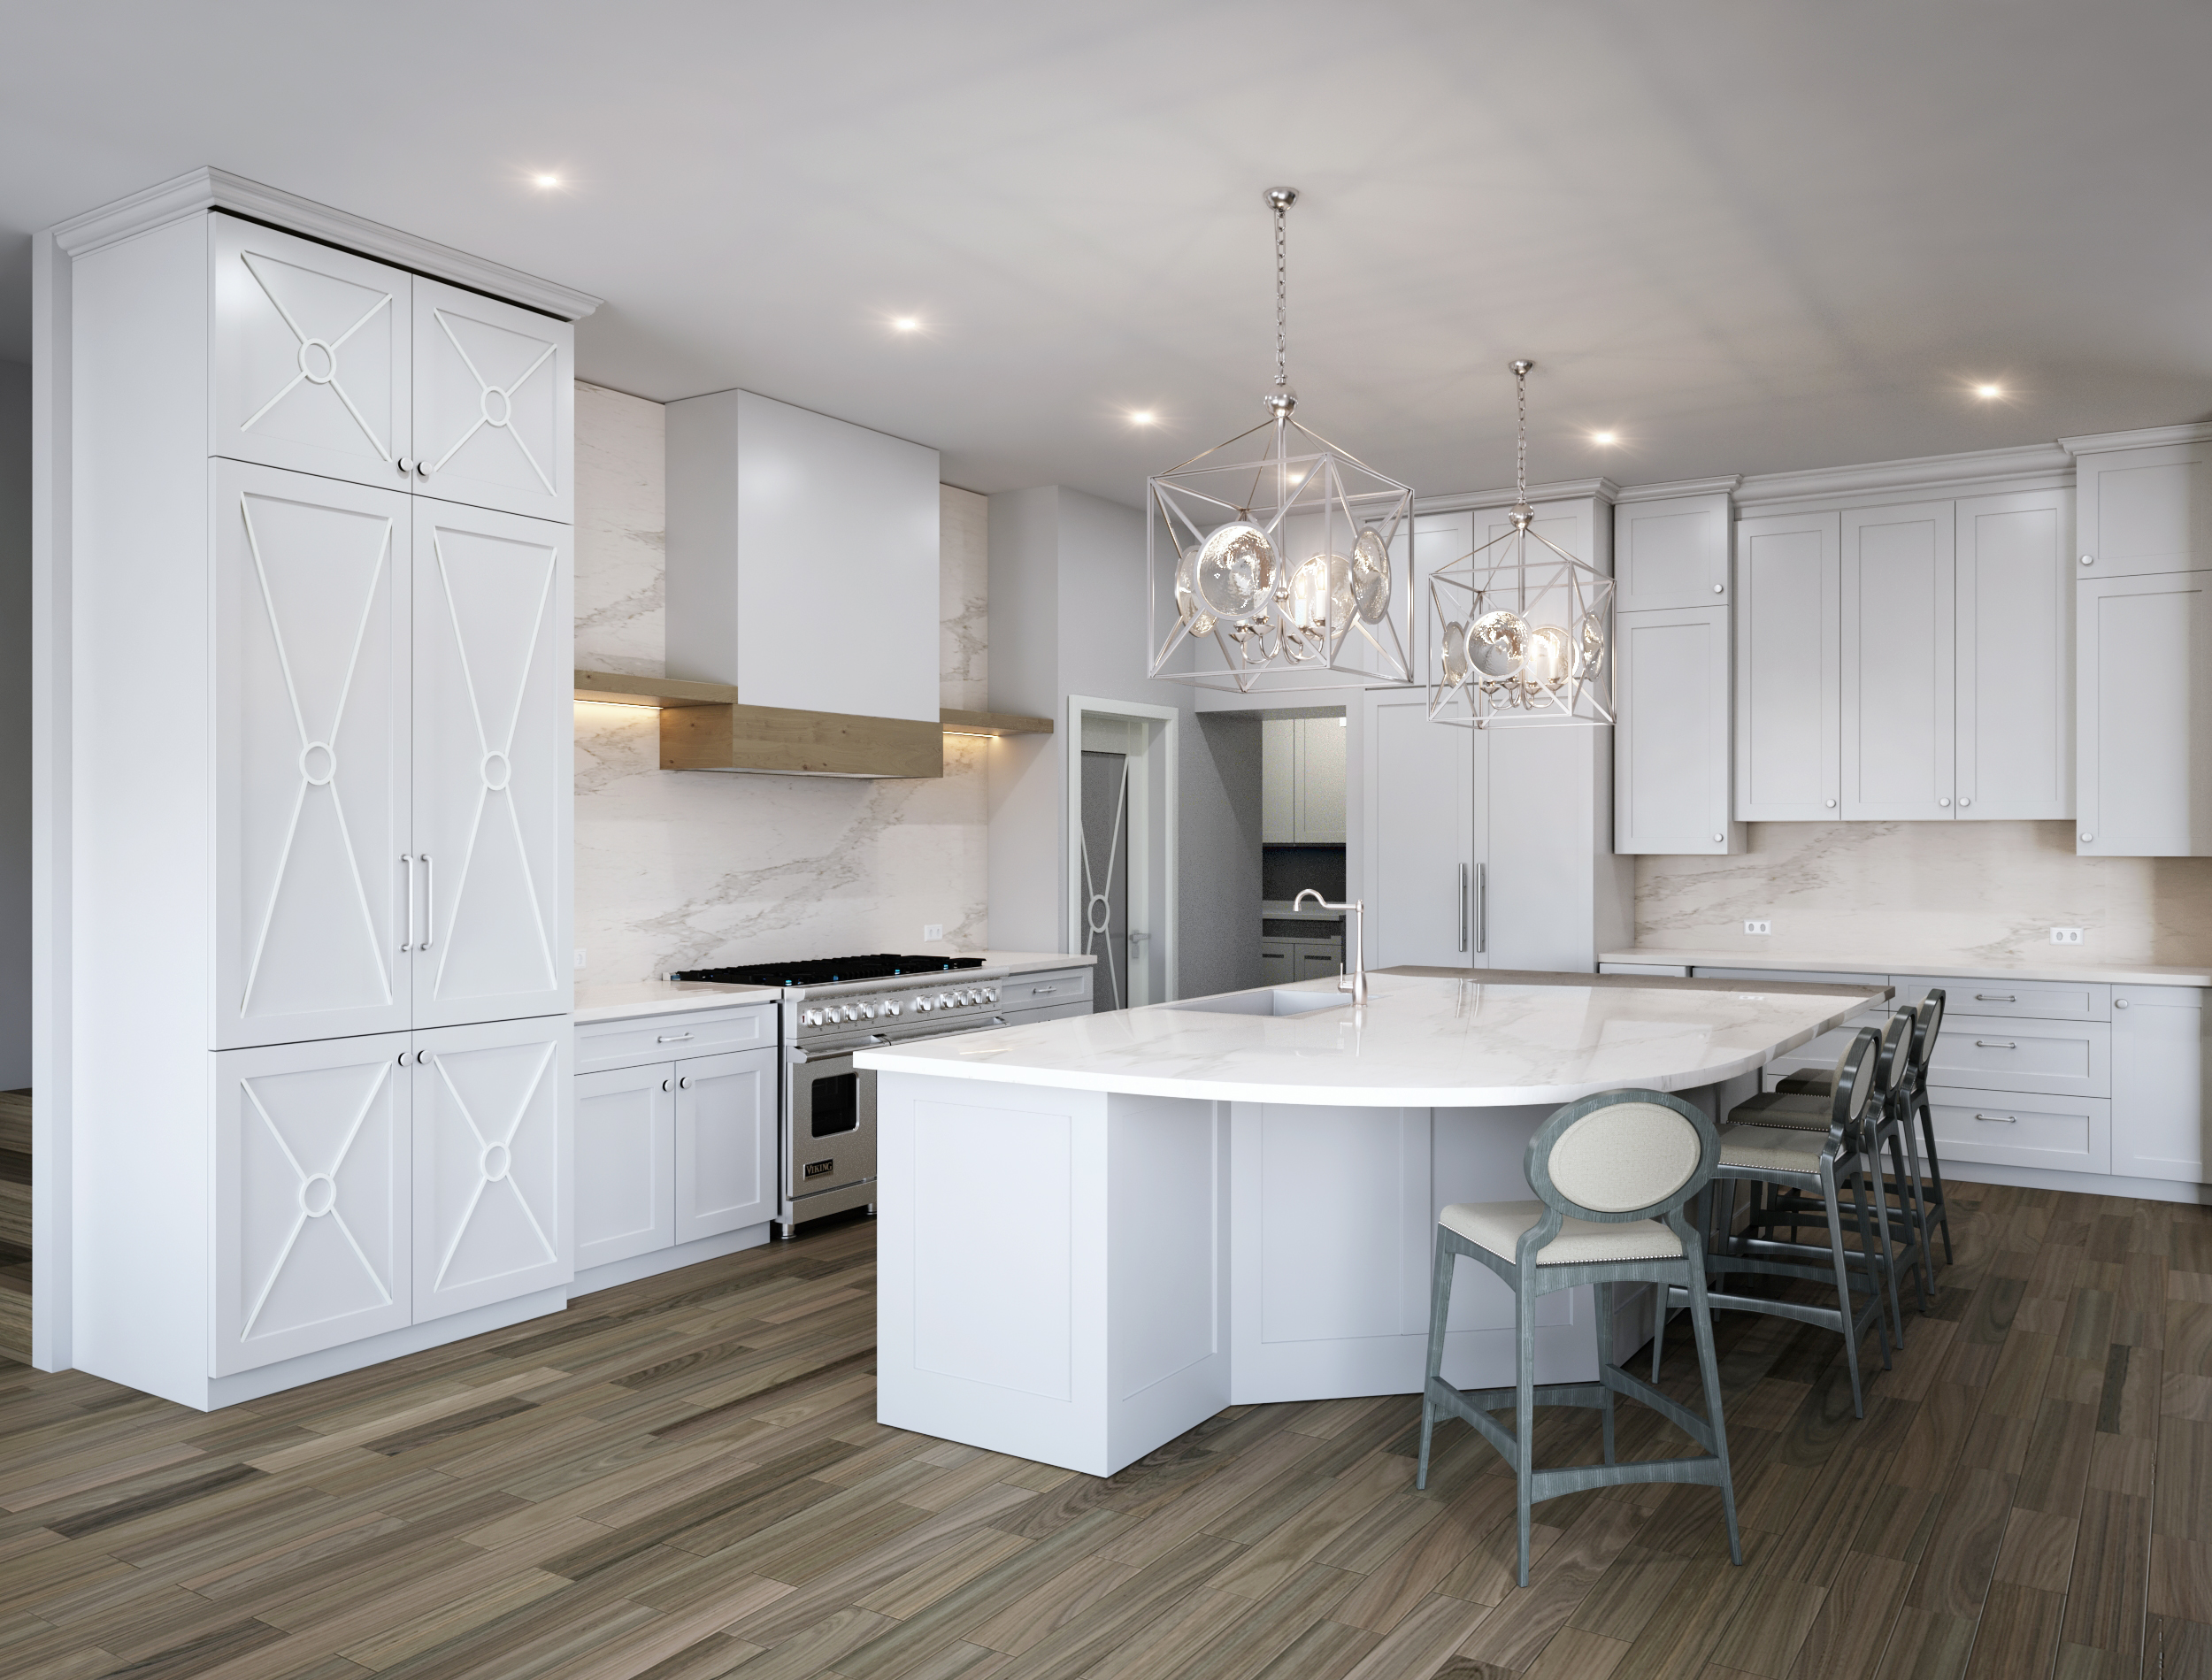 Some Beautiful Kitchen Renderings For Remodel Projects Designed